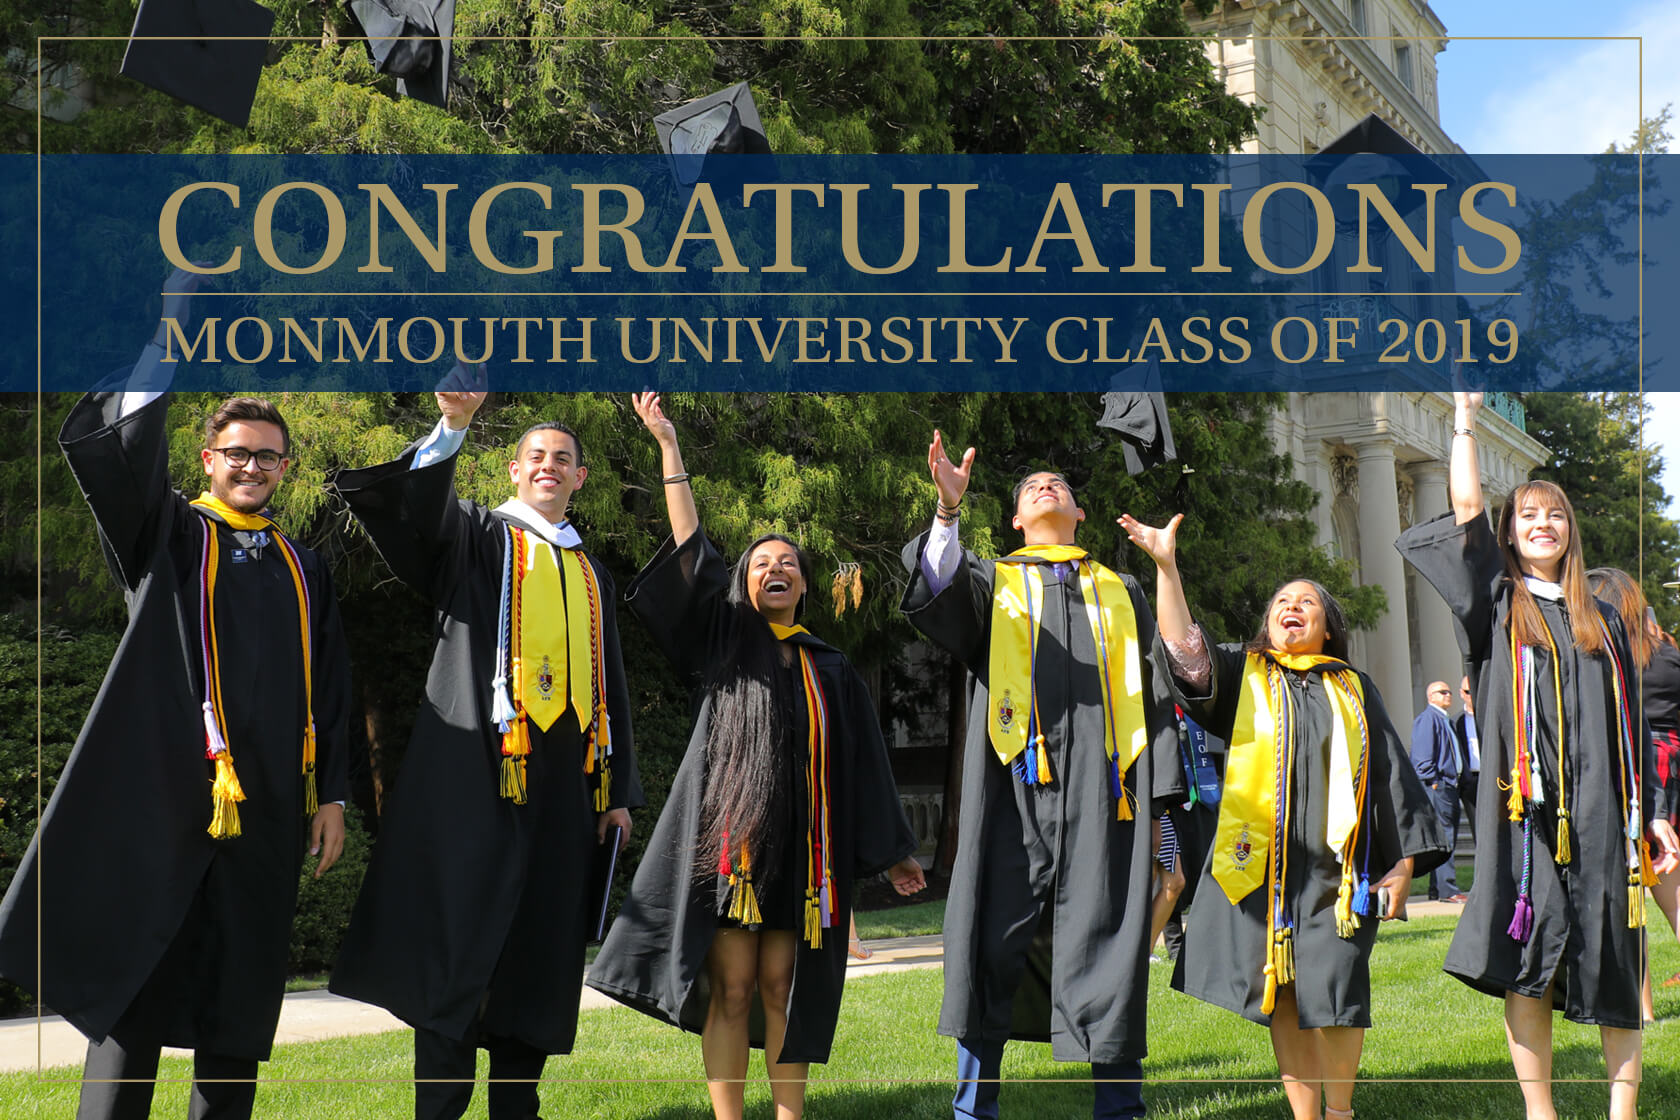 Congratulationas Monmouth University Class of 2019